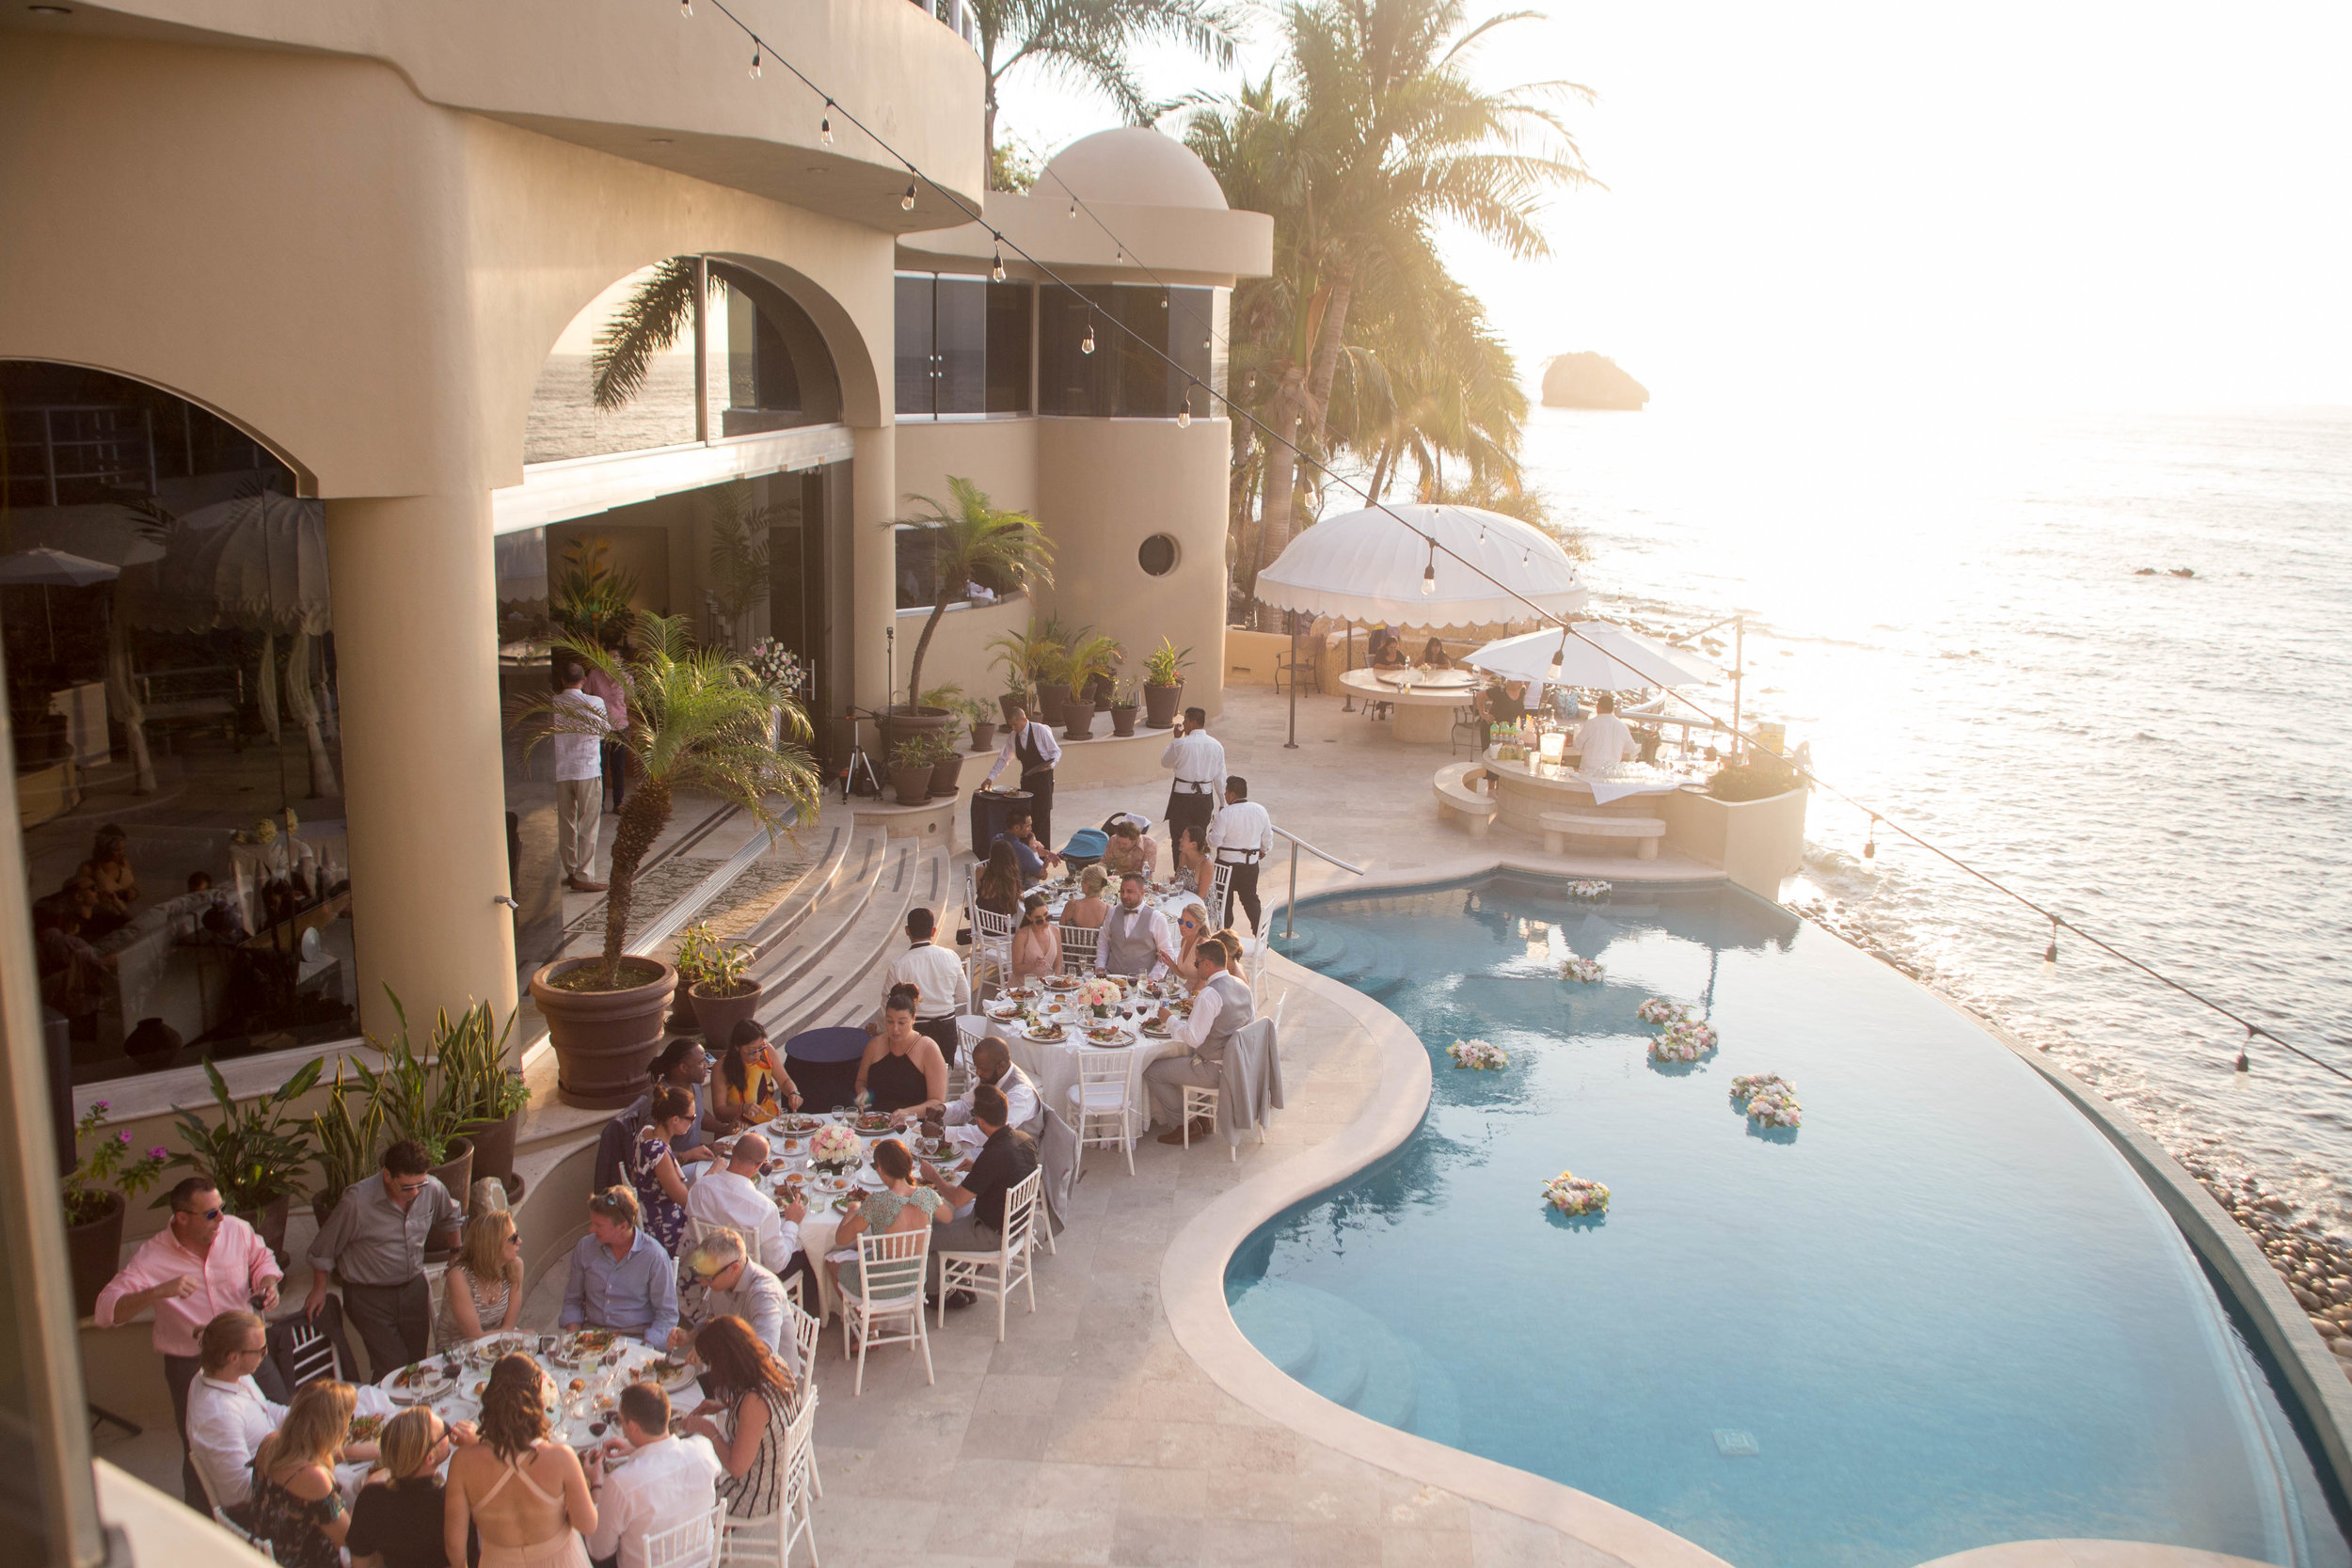 Guest Post Series - with BEAUTIFUL VALLARTA WEDDINGS